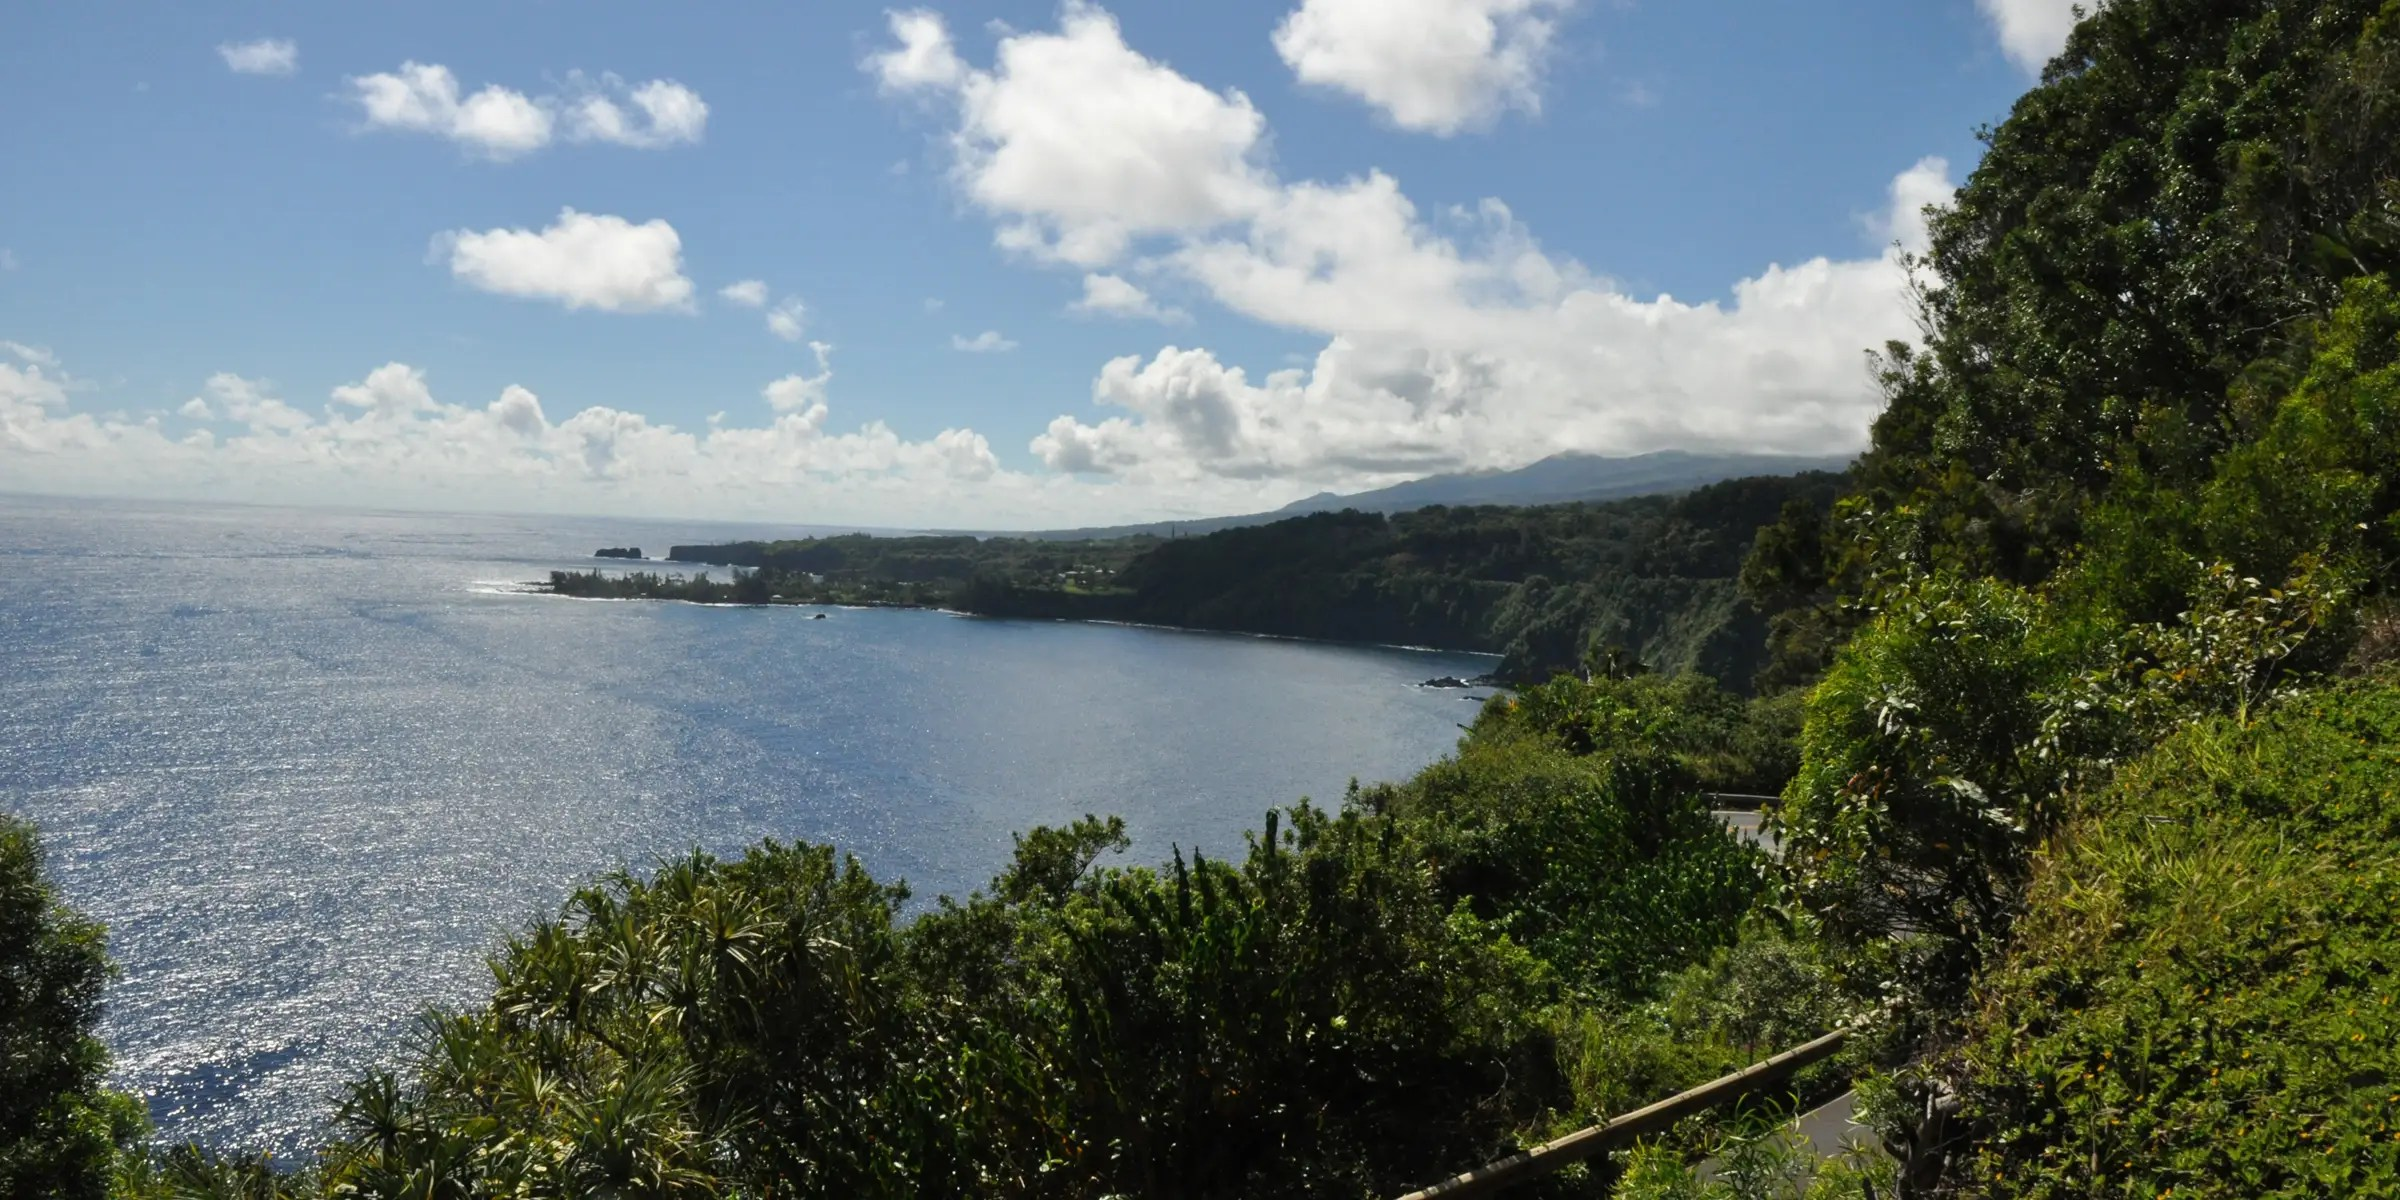 Hana Highway in Hawaii travels along Maui's coastline and consists of 620 sharp turns and 59 bridges. You'll experience a variety of views, including waterfalls, rain forests, and, of course, the ocean.